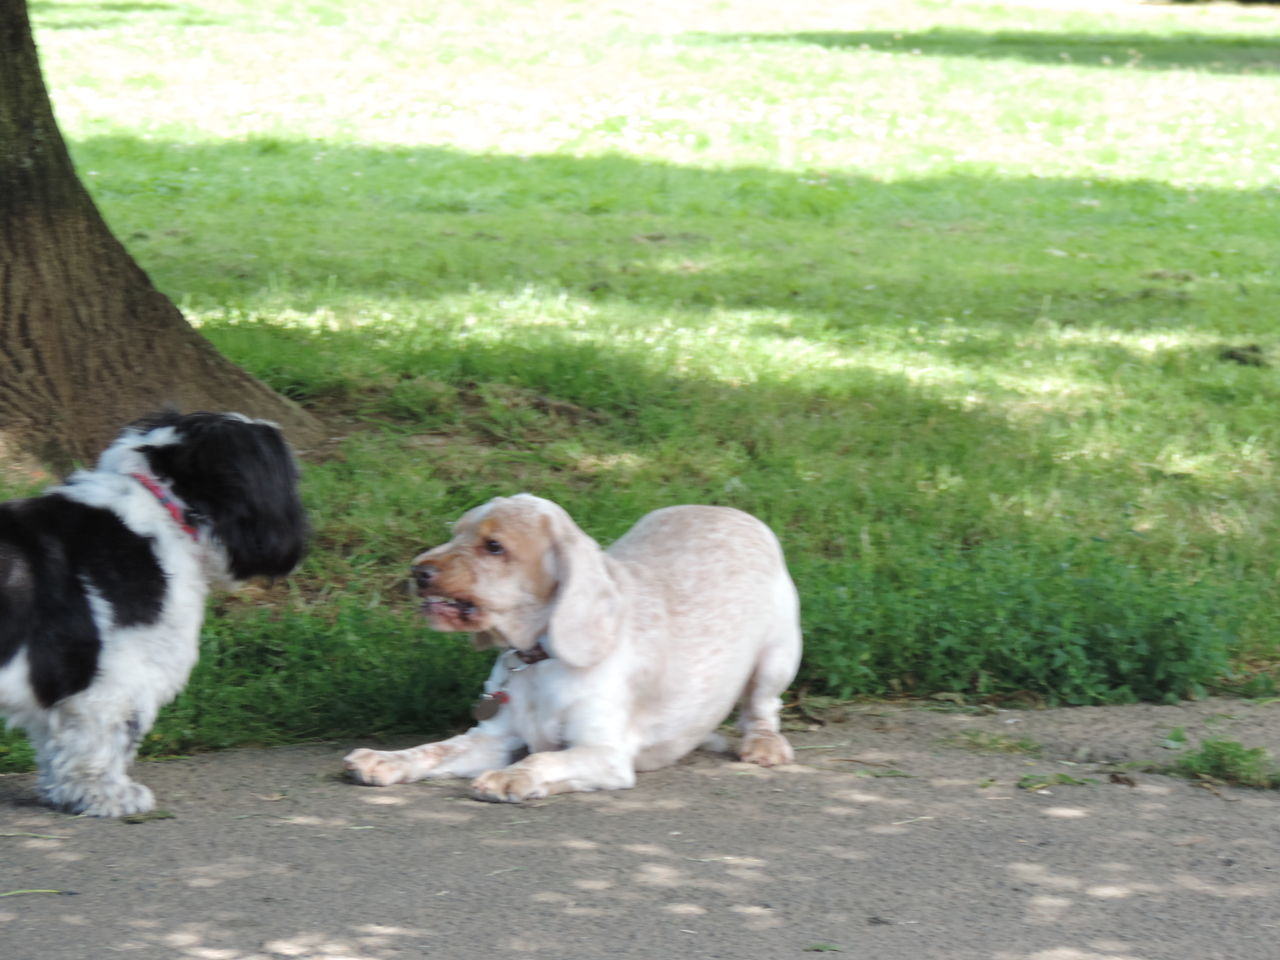 dog, domestic animals, pets, animal themes, grass, two animals, mammal, day, outdoors, no people, nature